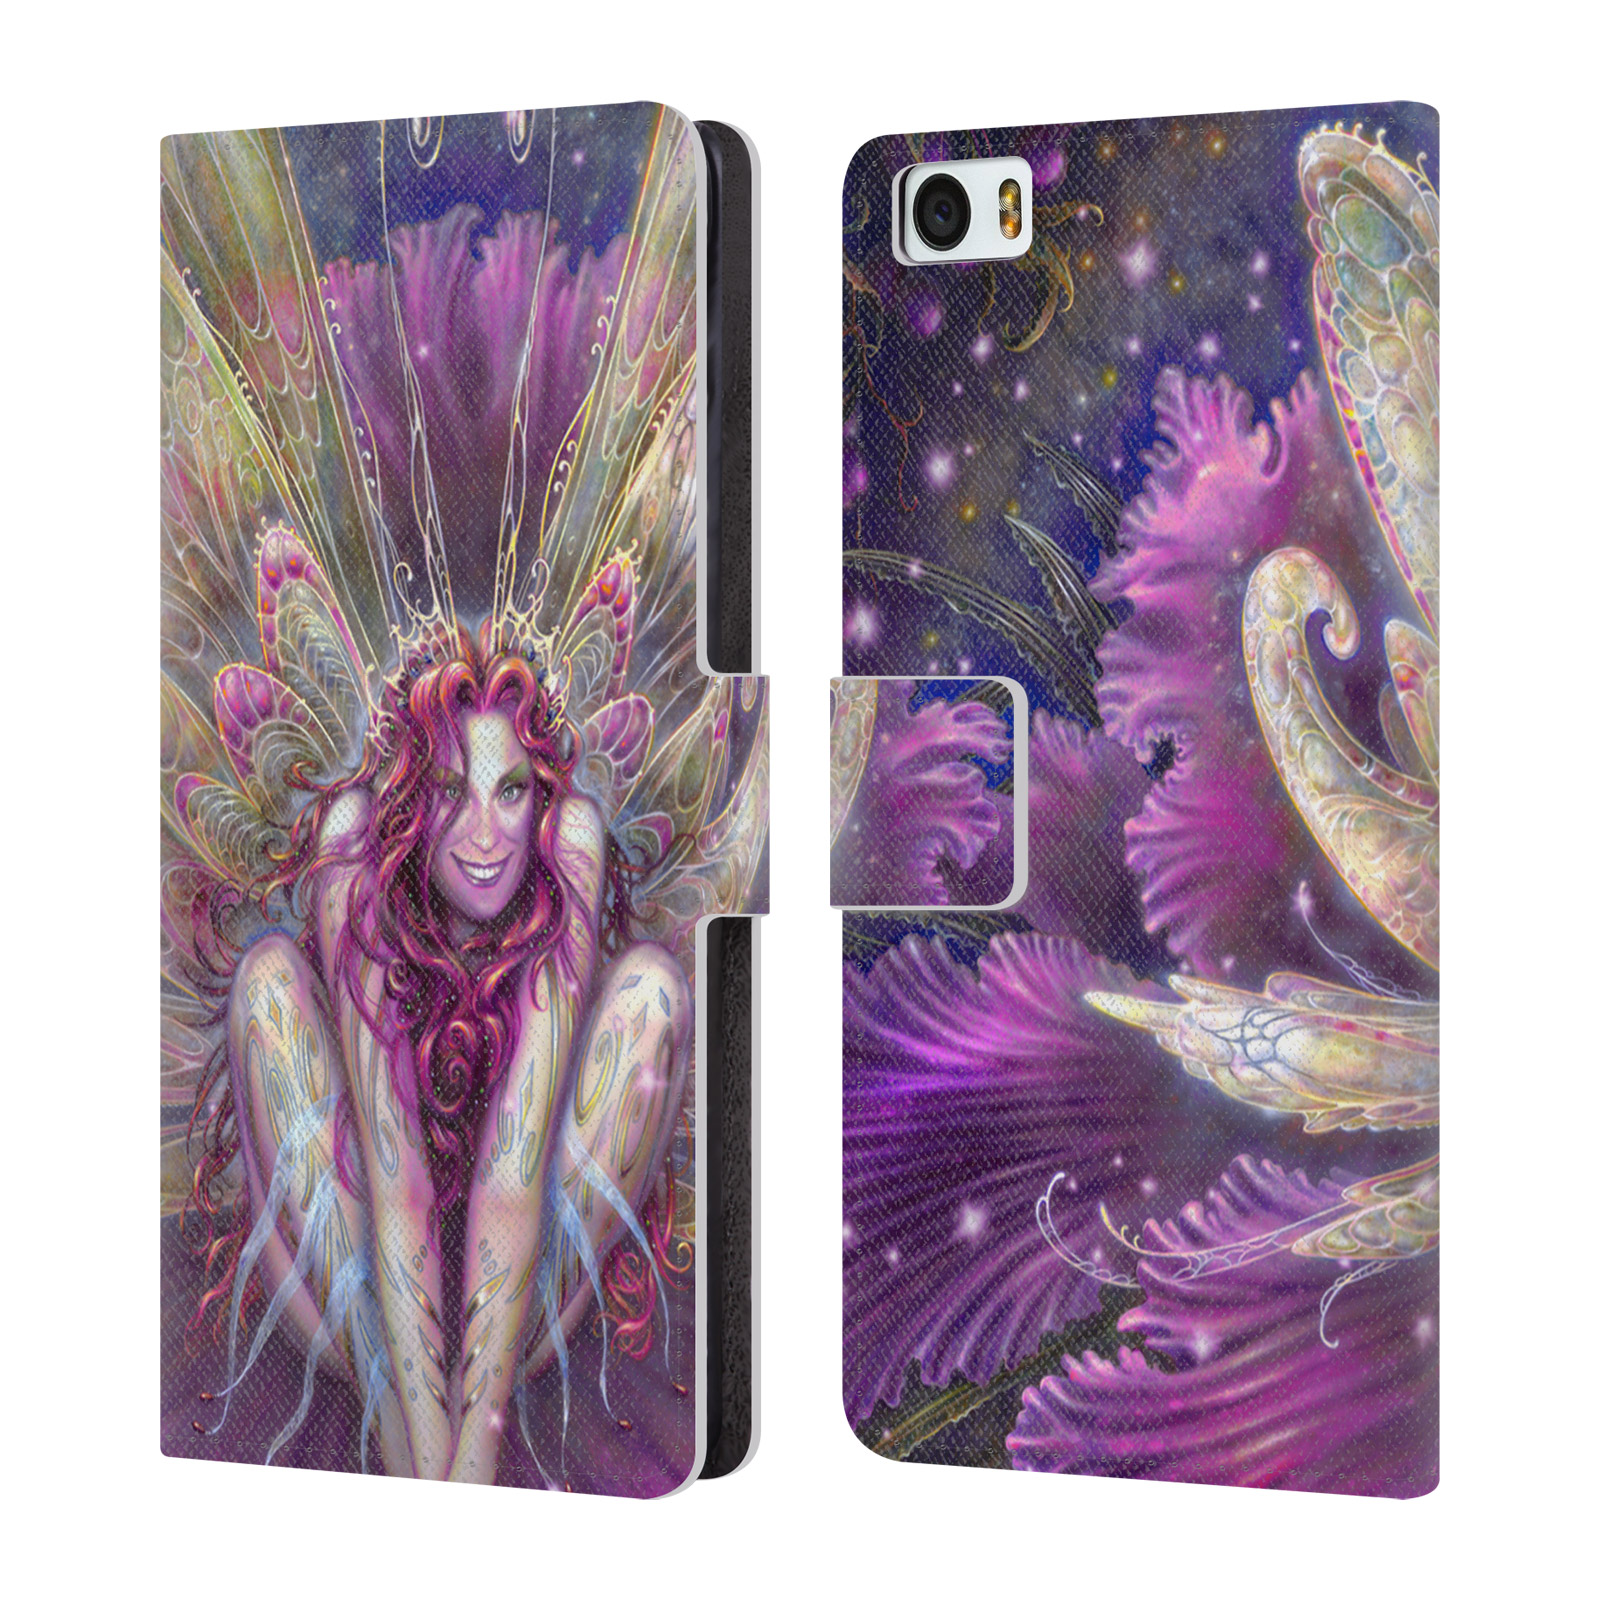 OFFICIAL-MYLES-PINKNEY-FANTASY-2-LEATHER-BOOK-WALLET-CASE-FOR-XIAOMI-PHONES